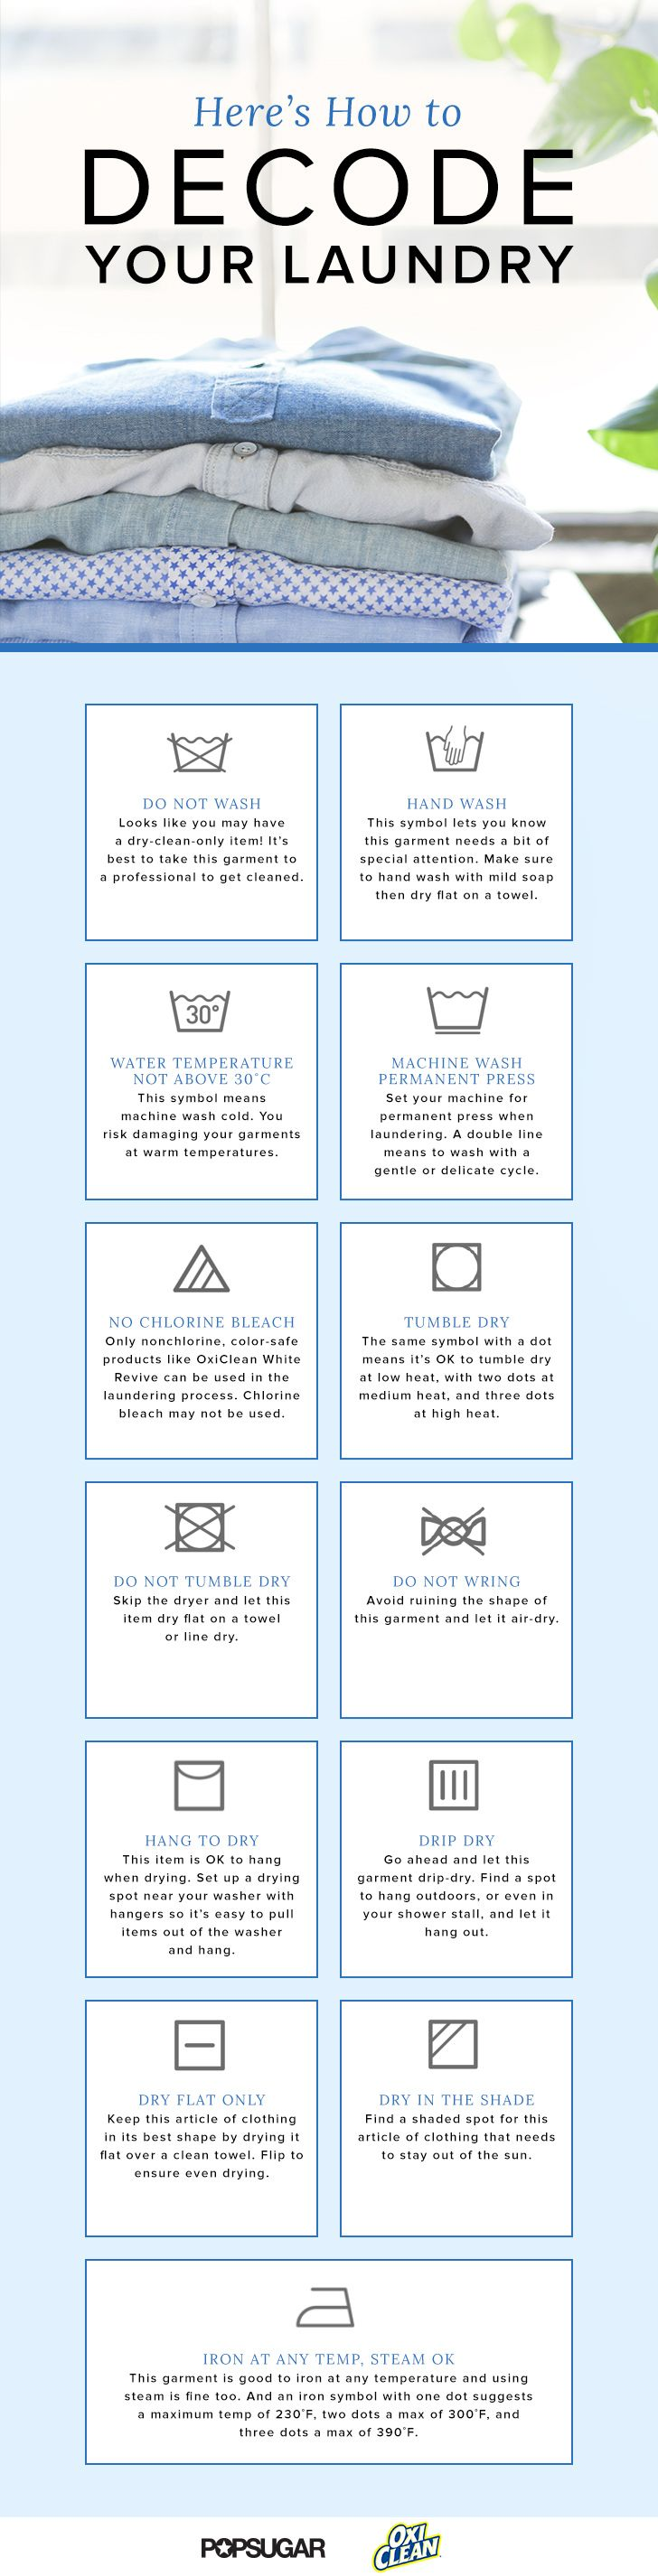 How to Decode Laundry Labels | POPSUGAR Smart Living